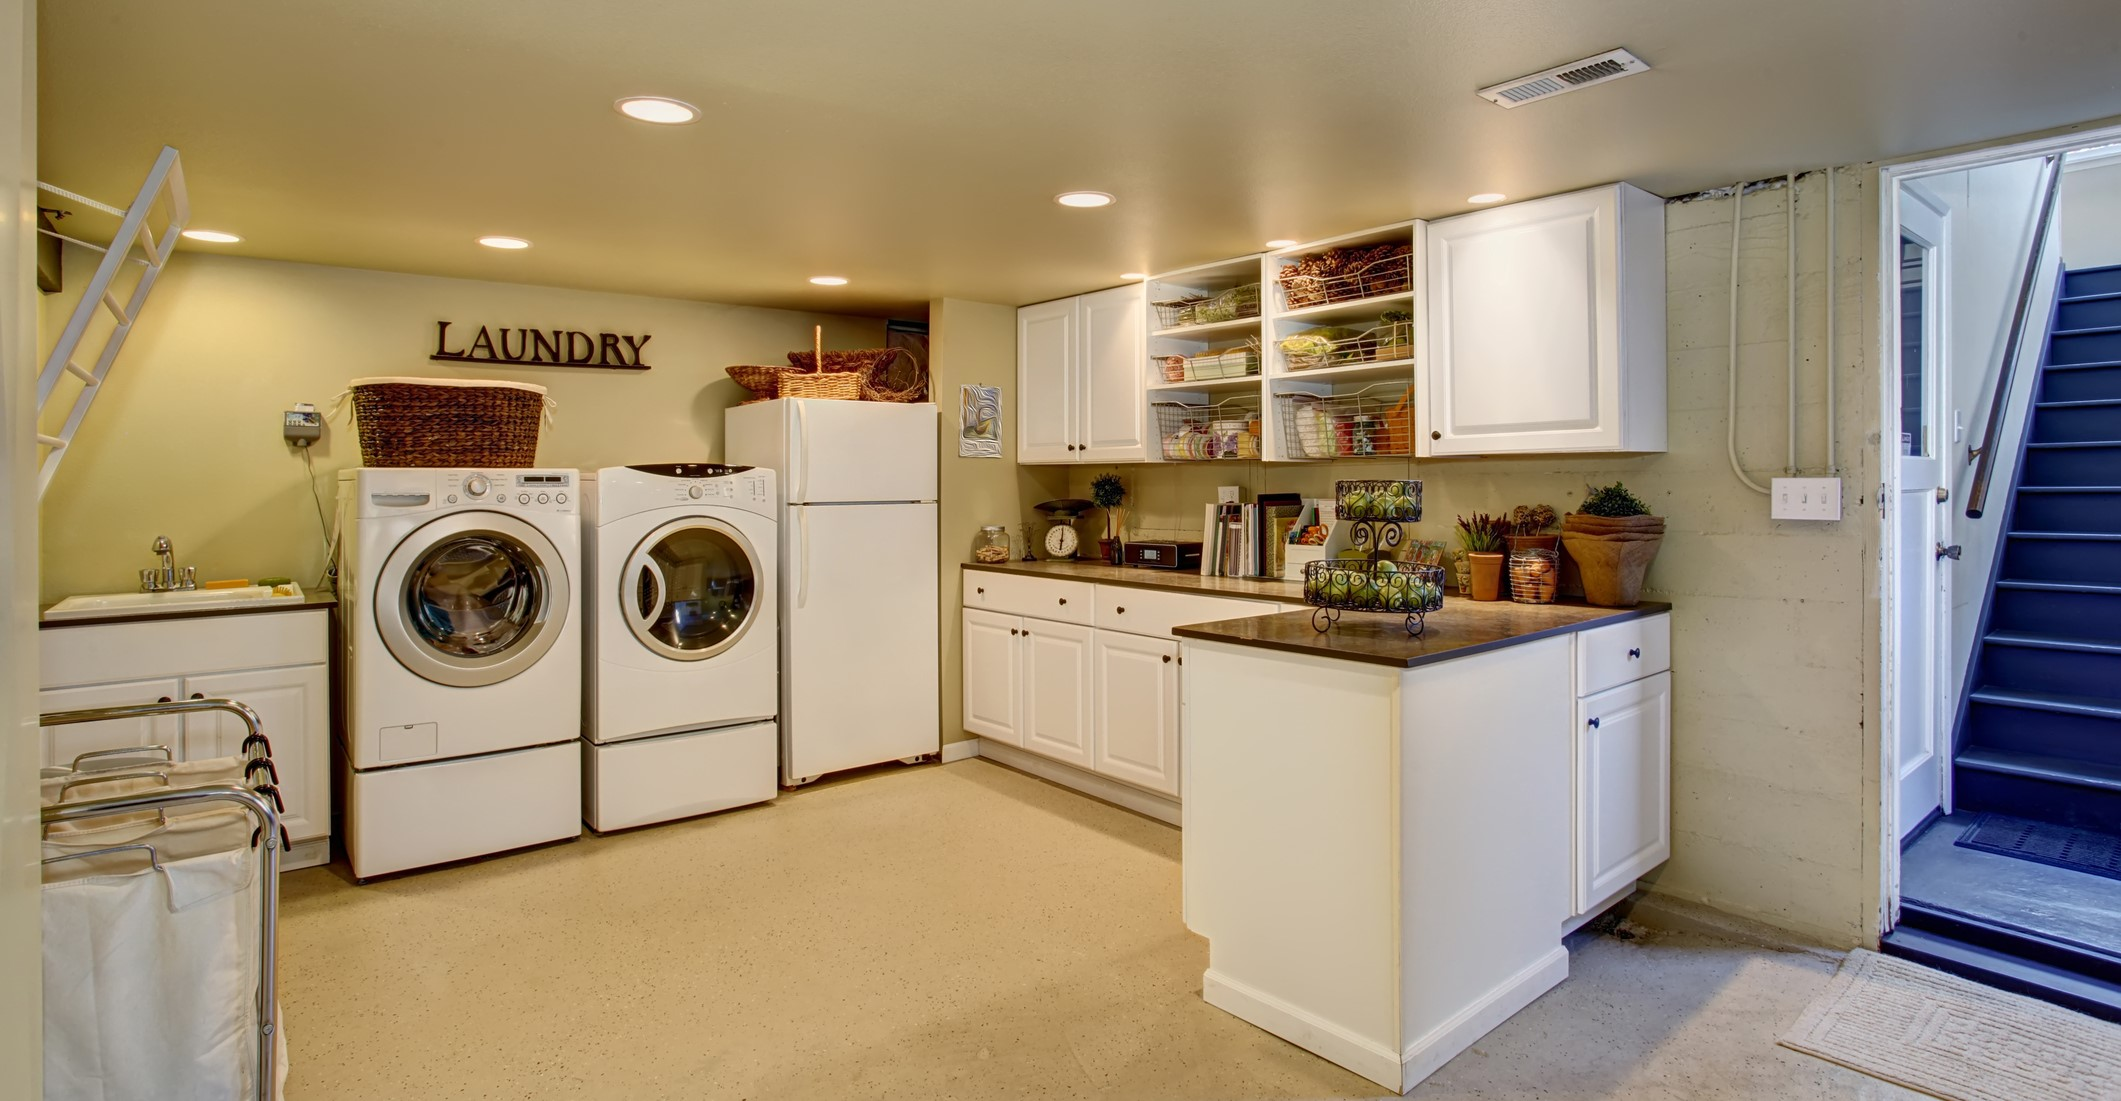 iStock-481334670 - laundry room cropped.jpg